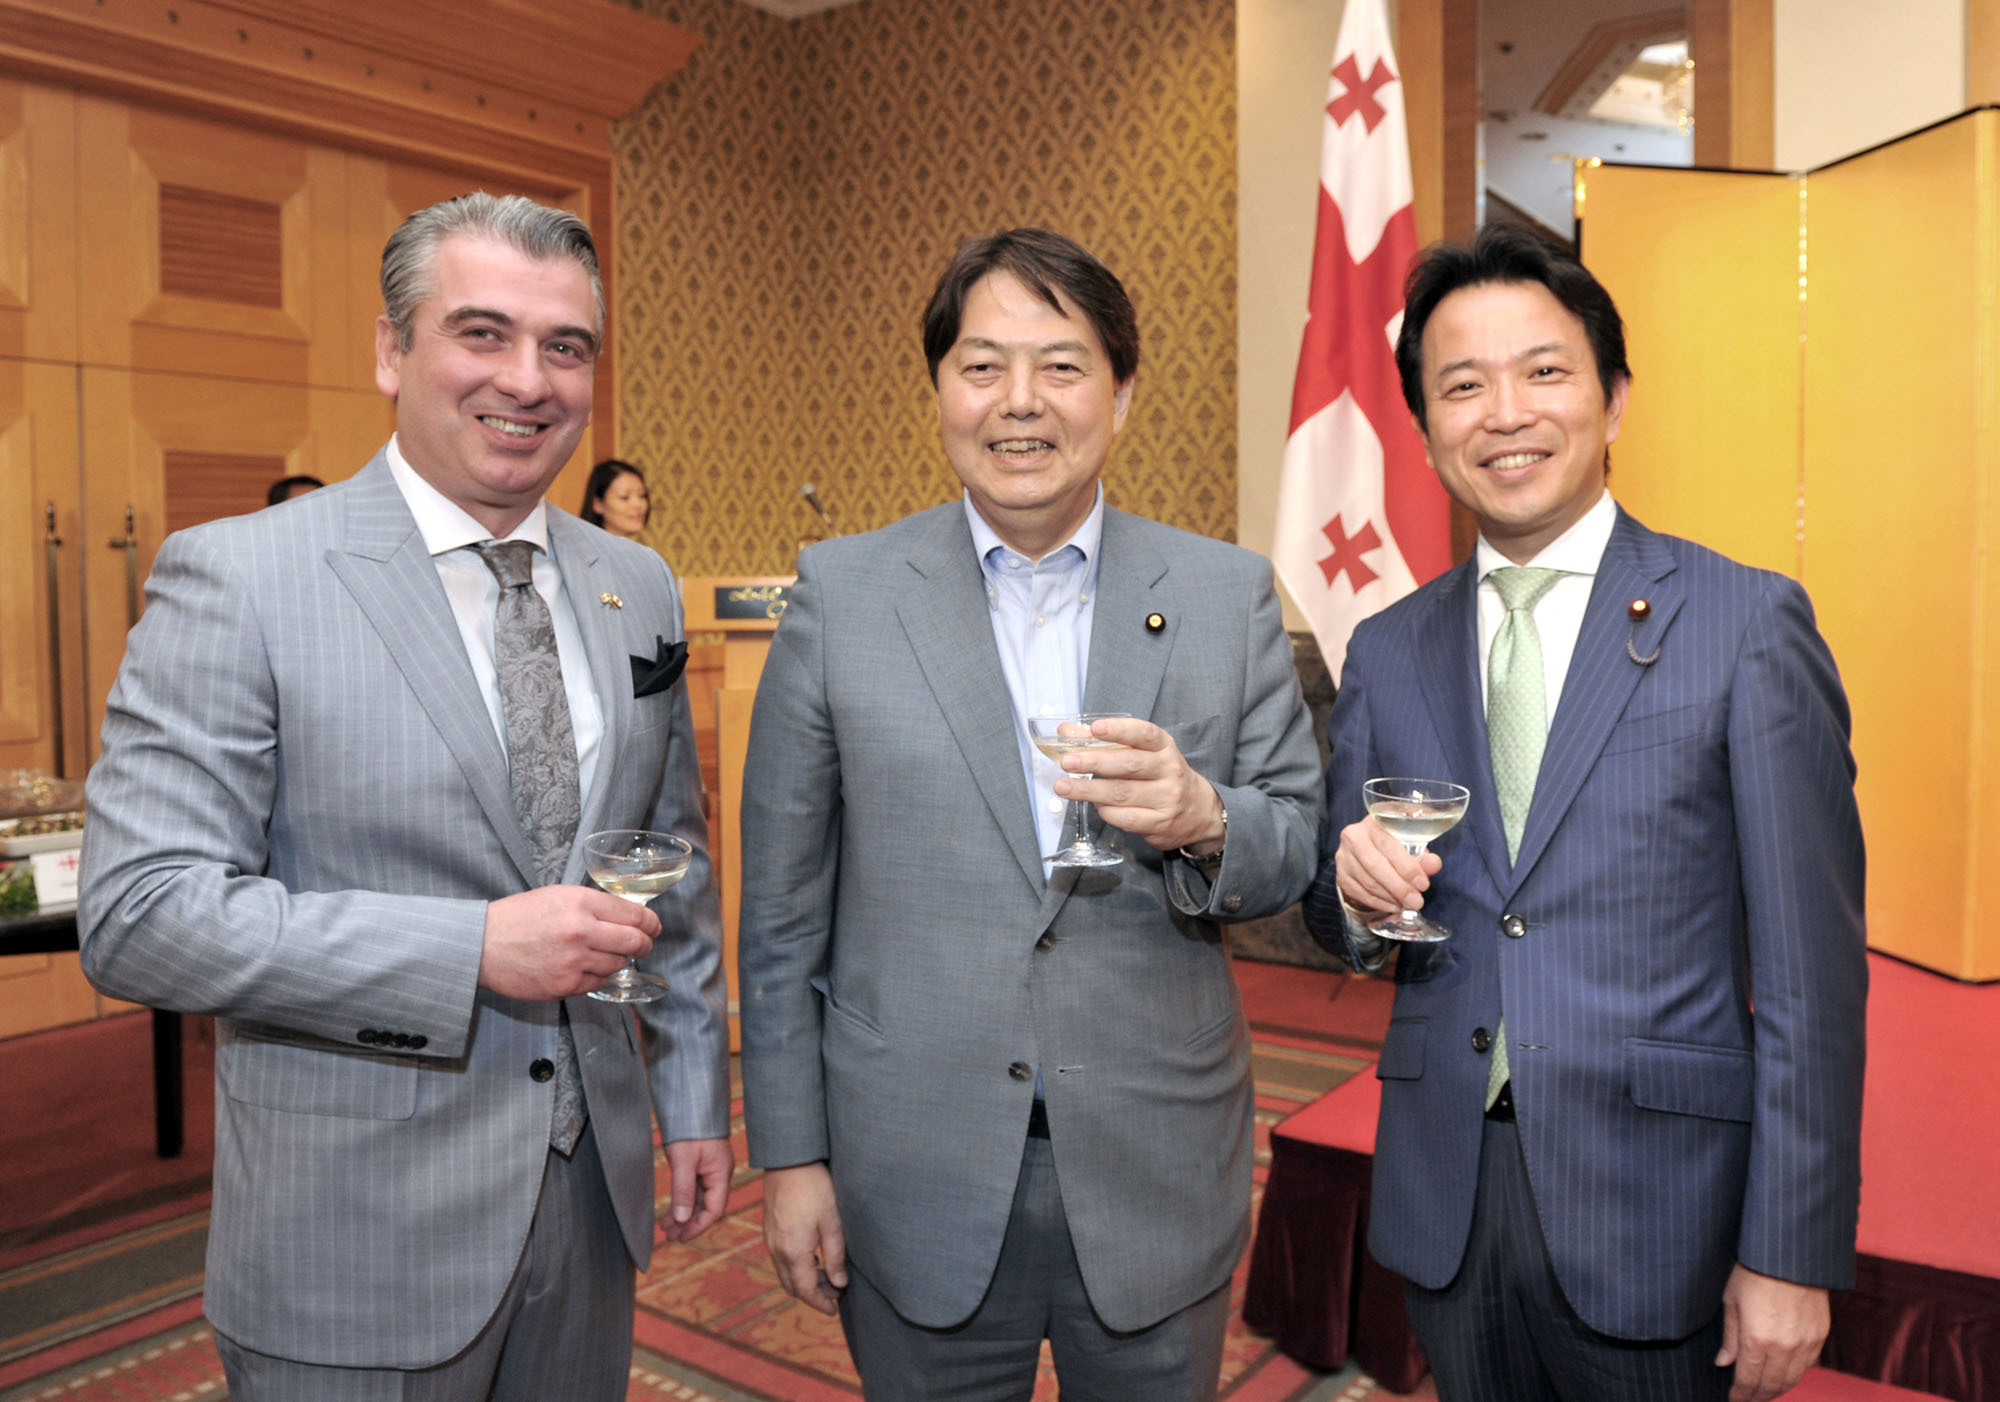 Georgian Ambassador Levan Tsintsadze (left) shares a drink with former Agriculture, Forestry and Fisheries Minister Yoshimasa Hayashi (center) and Parliamentary Vice-Minister for Foreign Affairs Masakazu Hamachi during a reception to celebrate the country's Independence Day at the Hotel Okura Tokyo on May 26. | YOSHIAKI MIURA